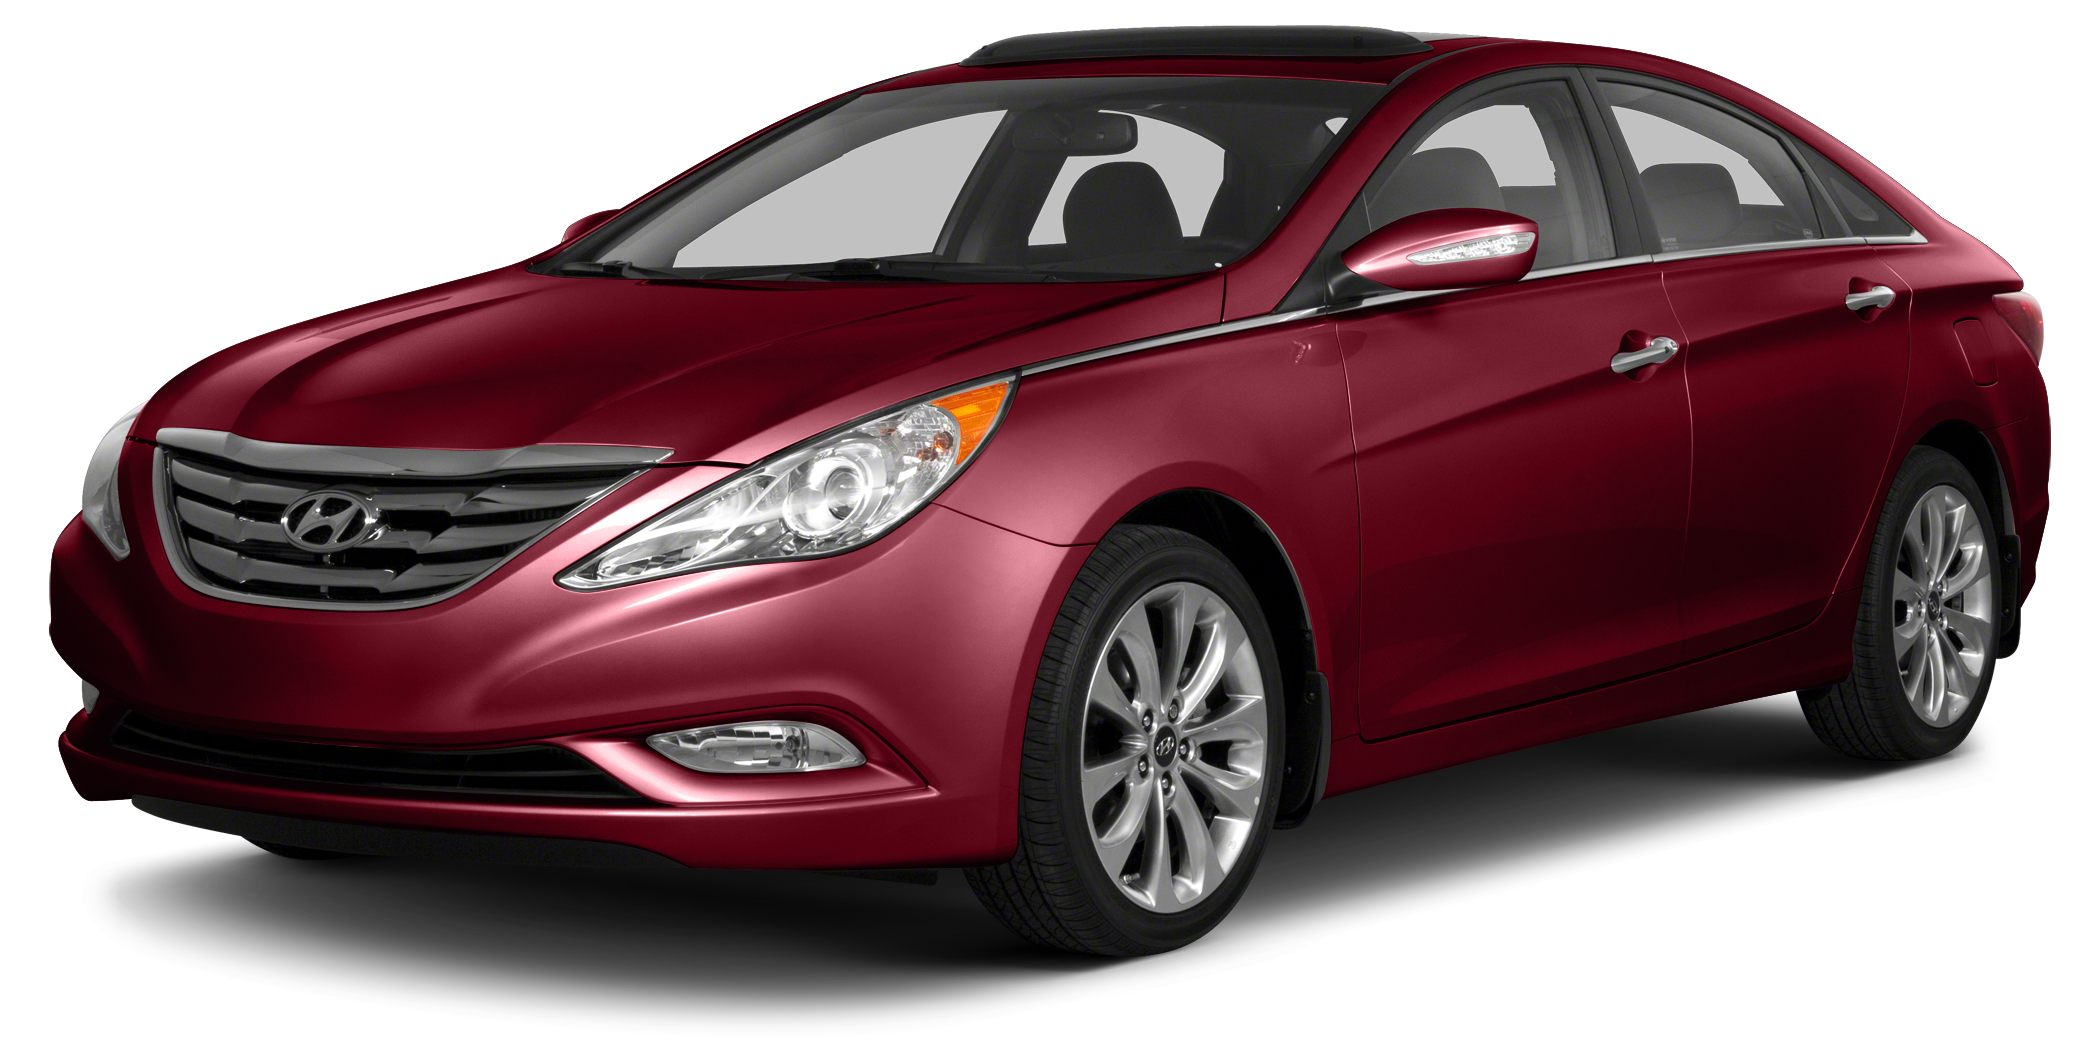 2013 Hyundai Sonata GLS Check out this 2013 Hyundai Sonata GLS It comes with a 240 liter 4 Cyl